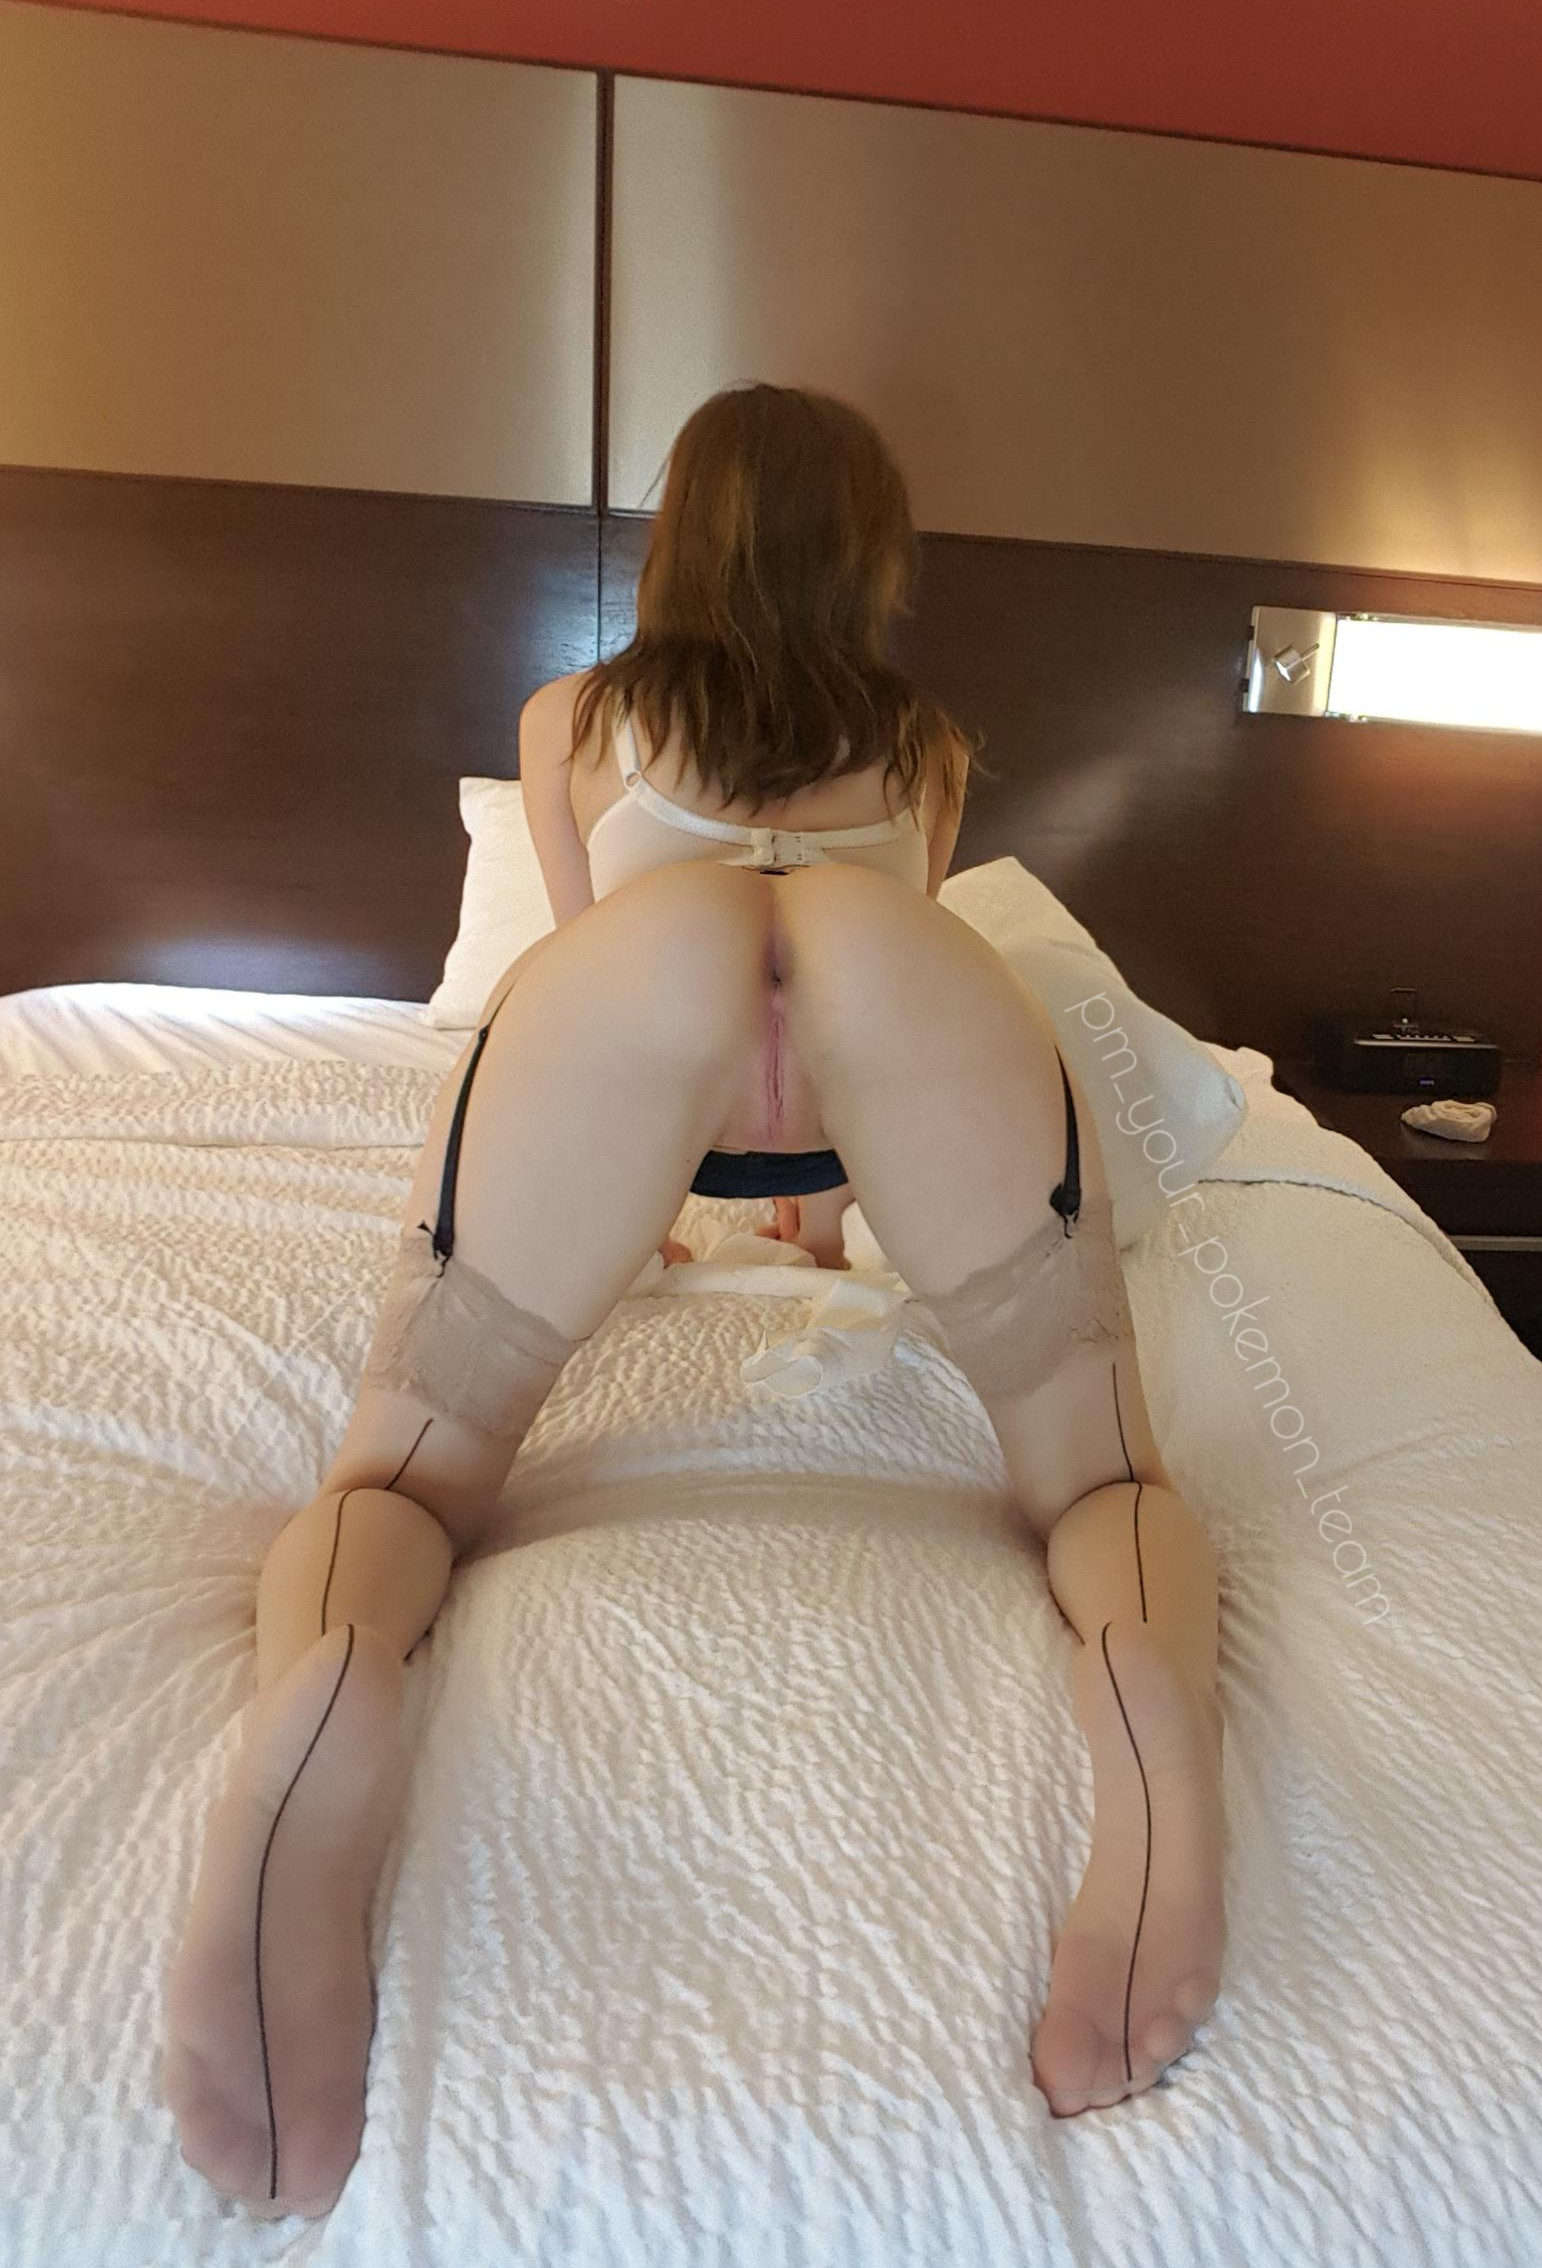 squirter gushing with her bald pussy masturbating